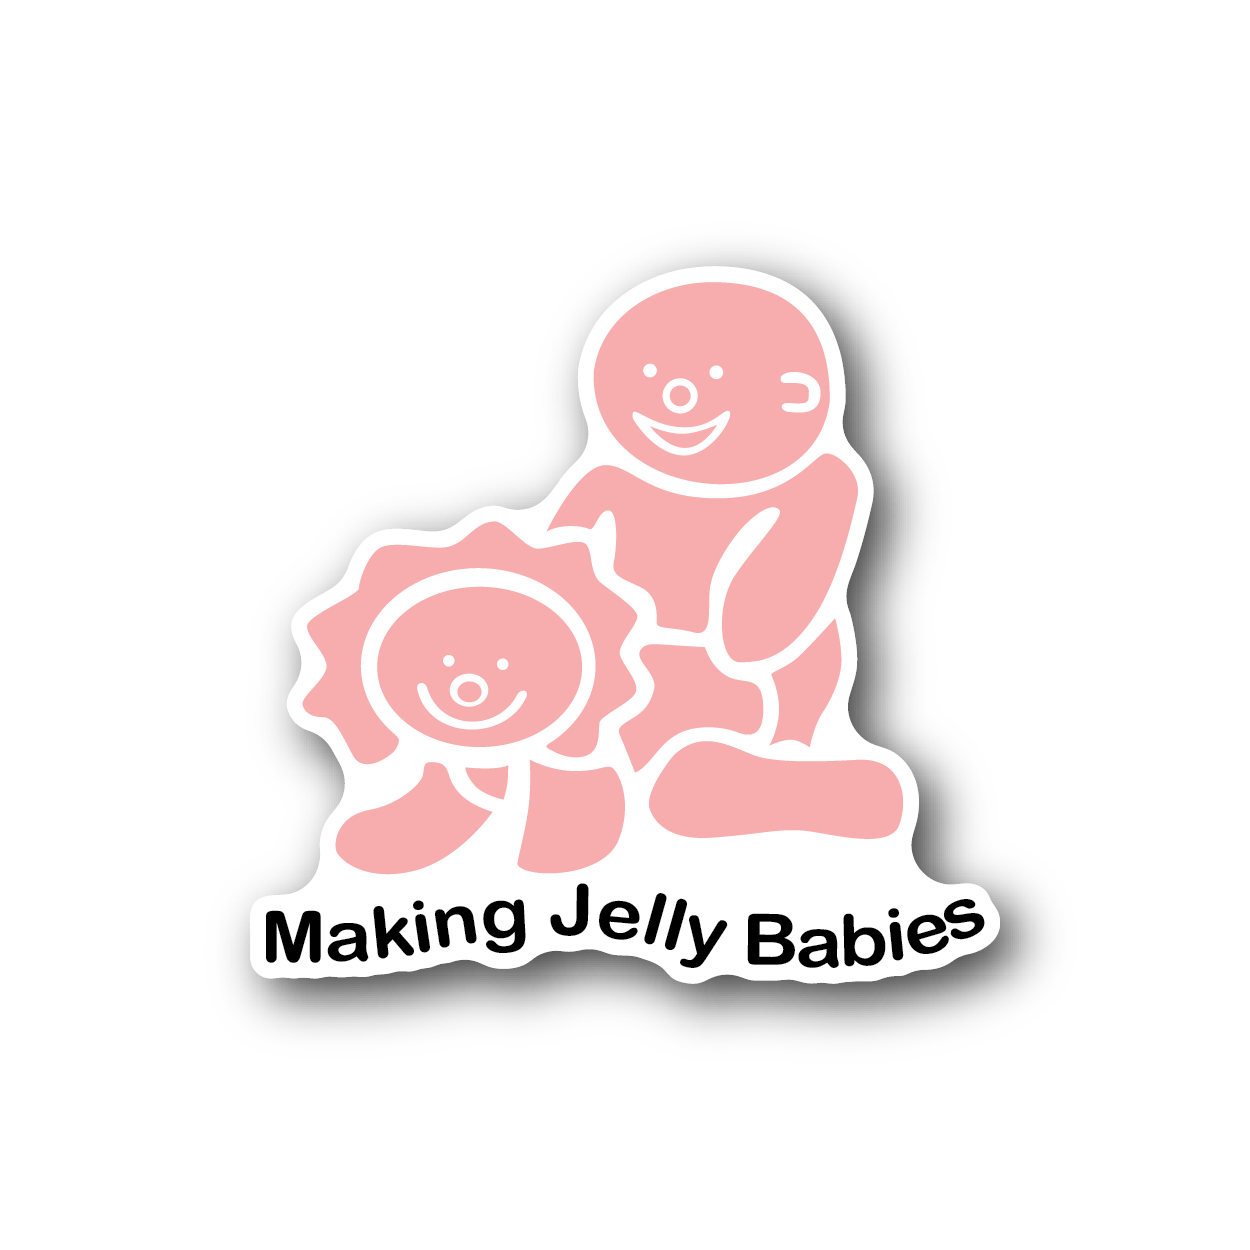 Making jelly babies racing sticker vinyl sticker 2 jpg